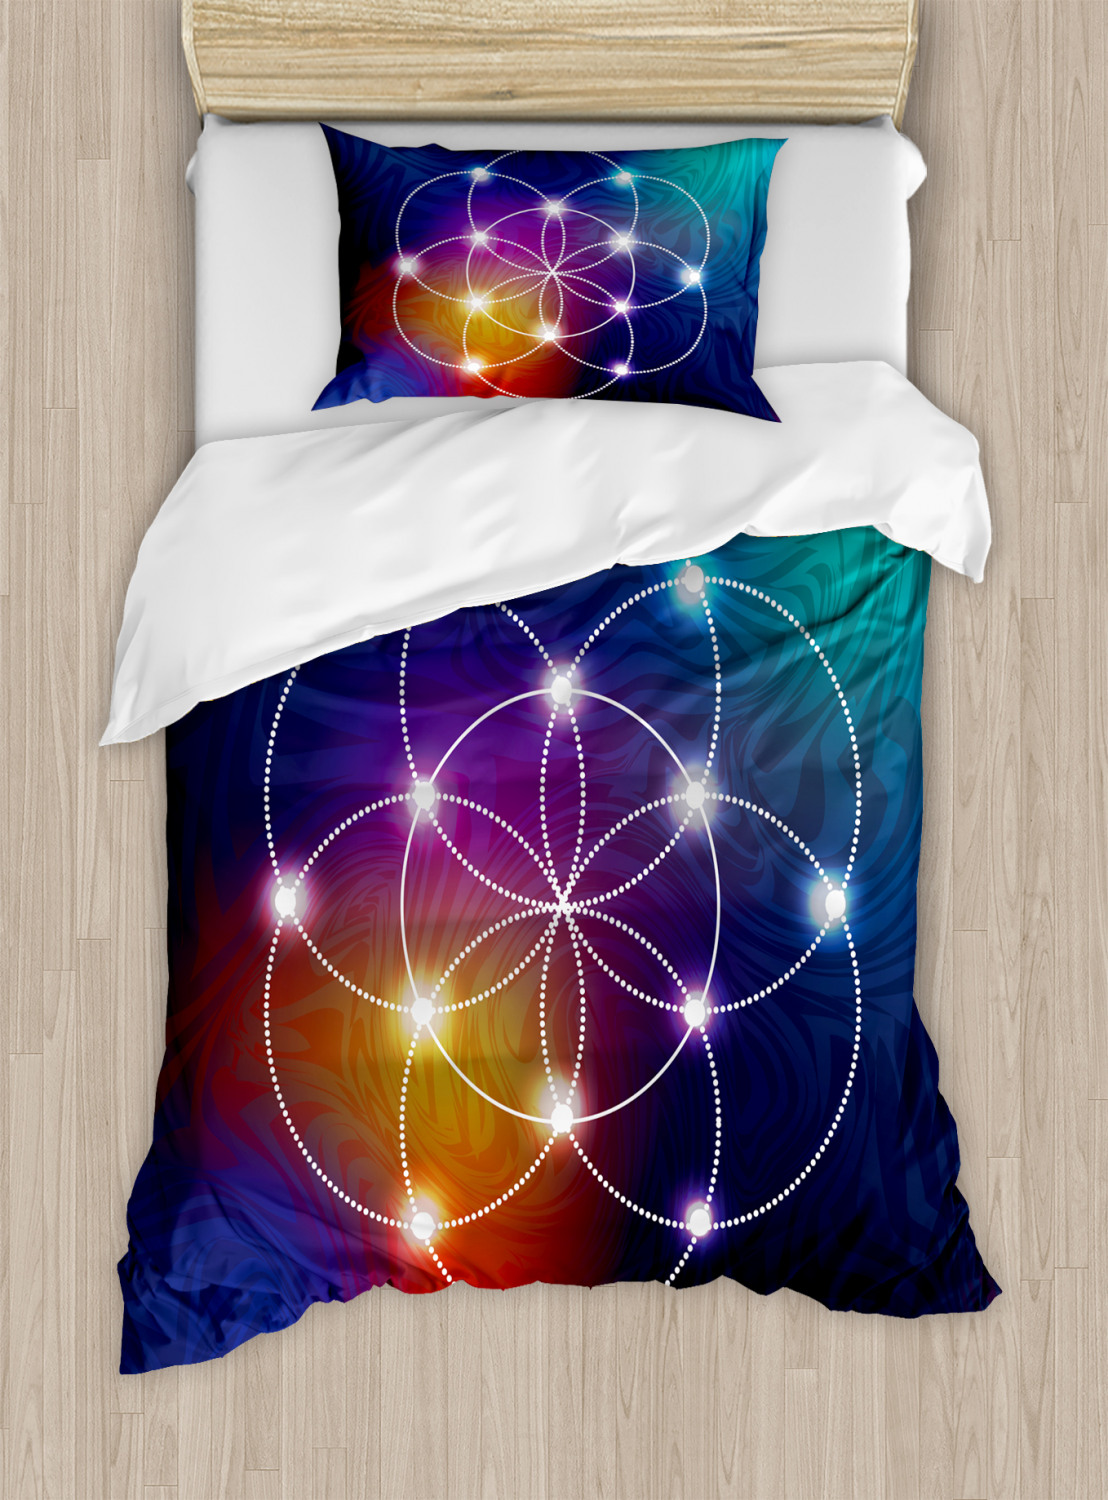 Flower-of-Life-Duvet-Cover-Set-Twin-Queen-King-Sizes-with-Pillow-Shams thumbnail 19